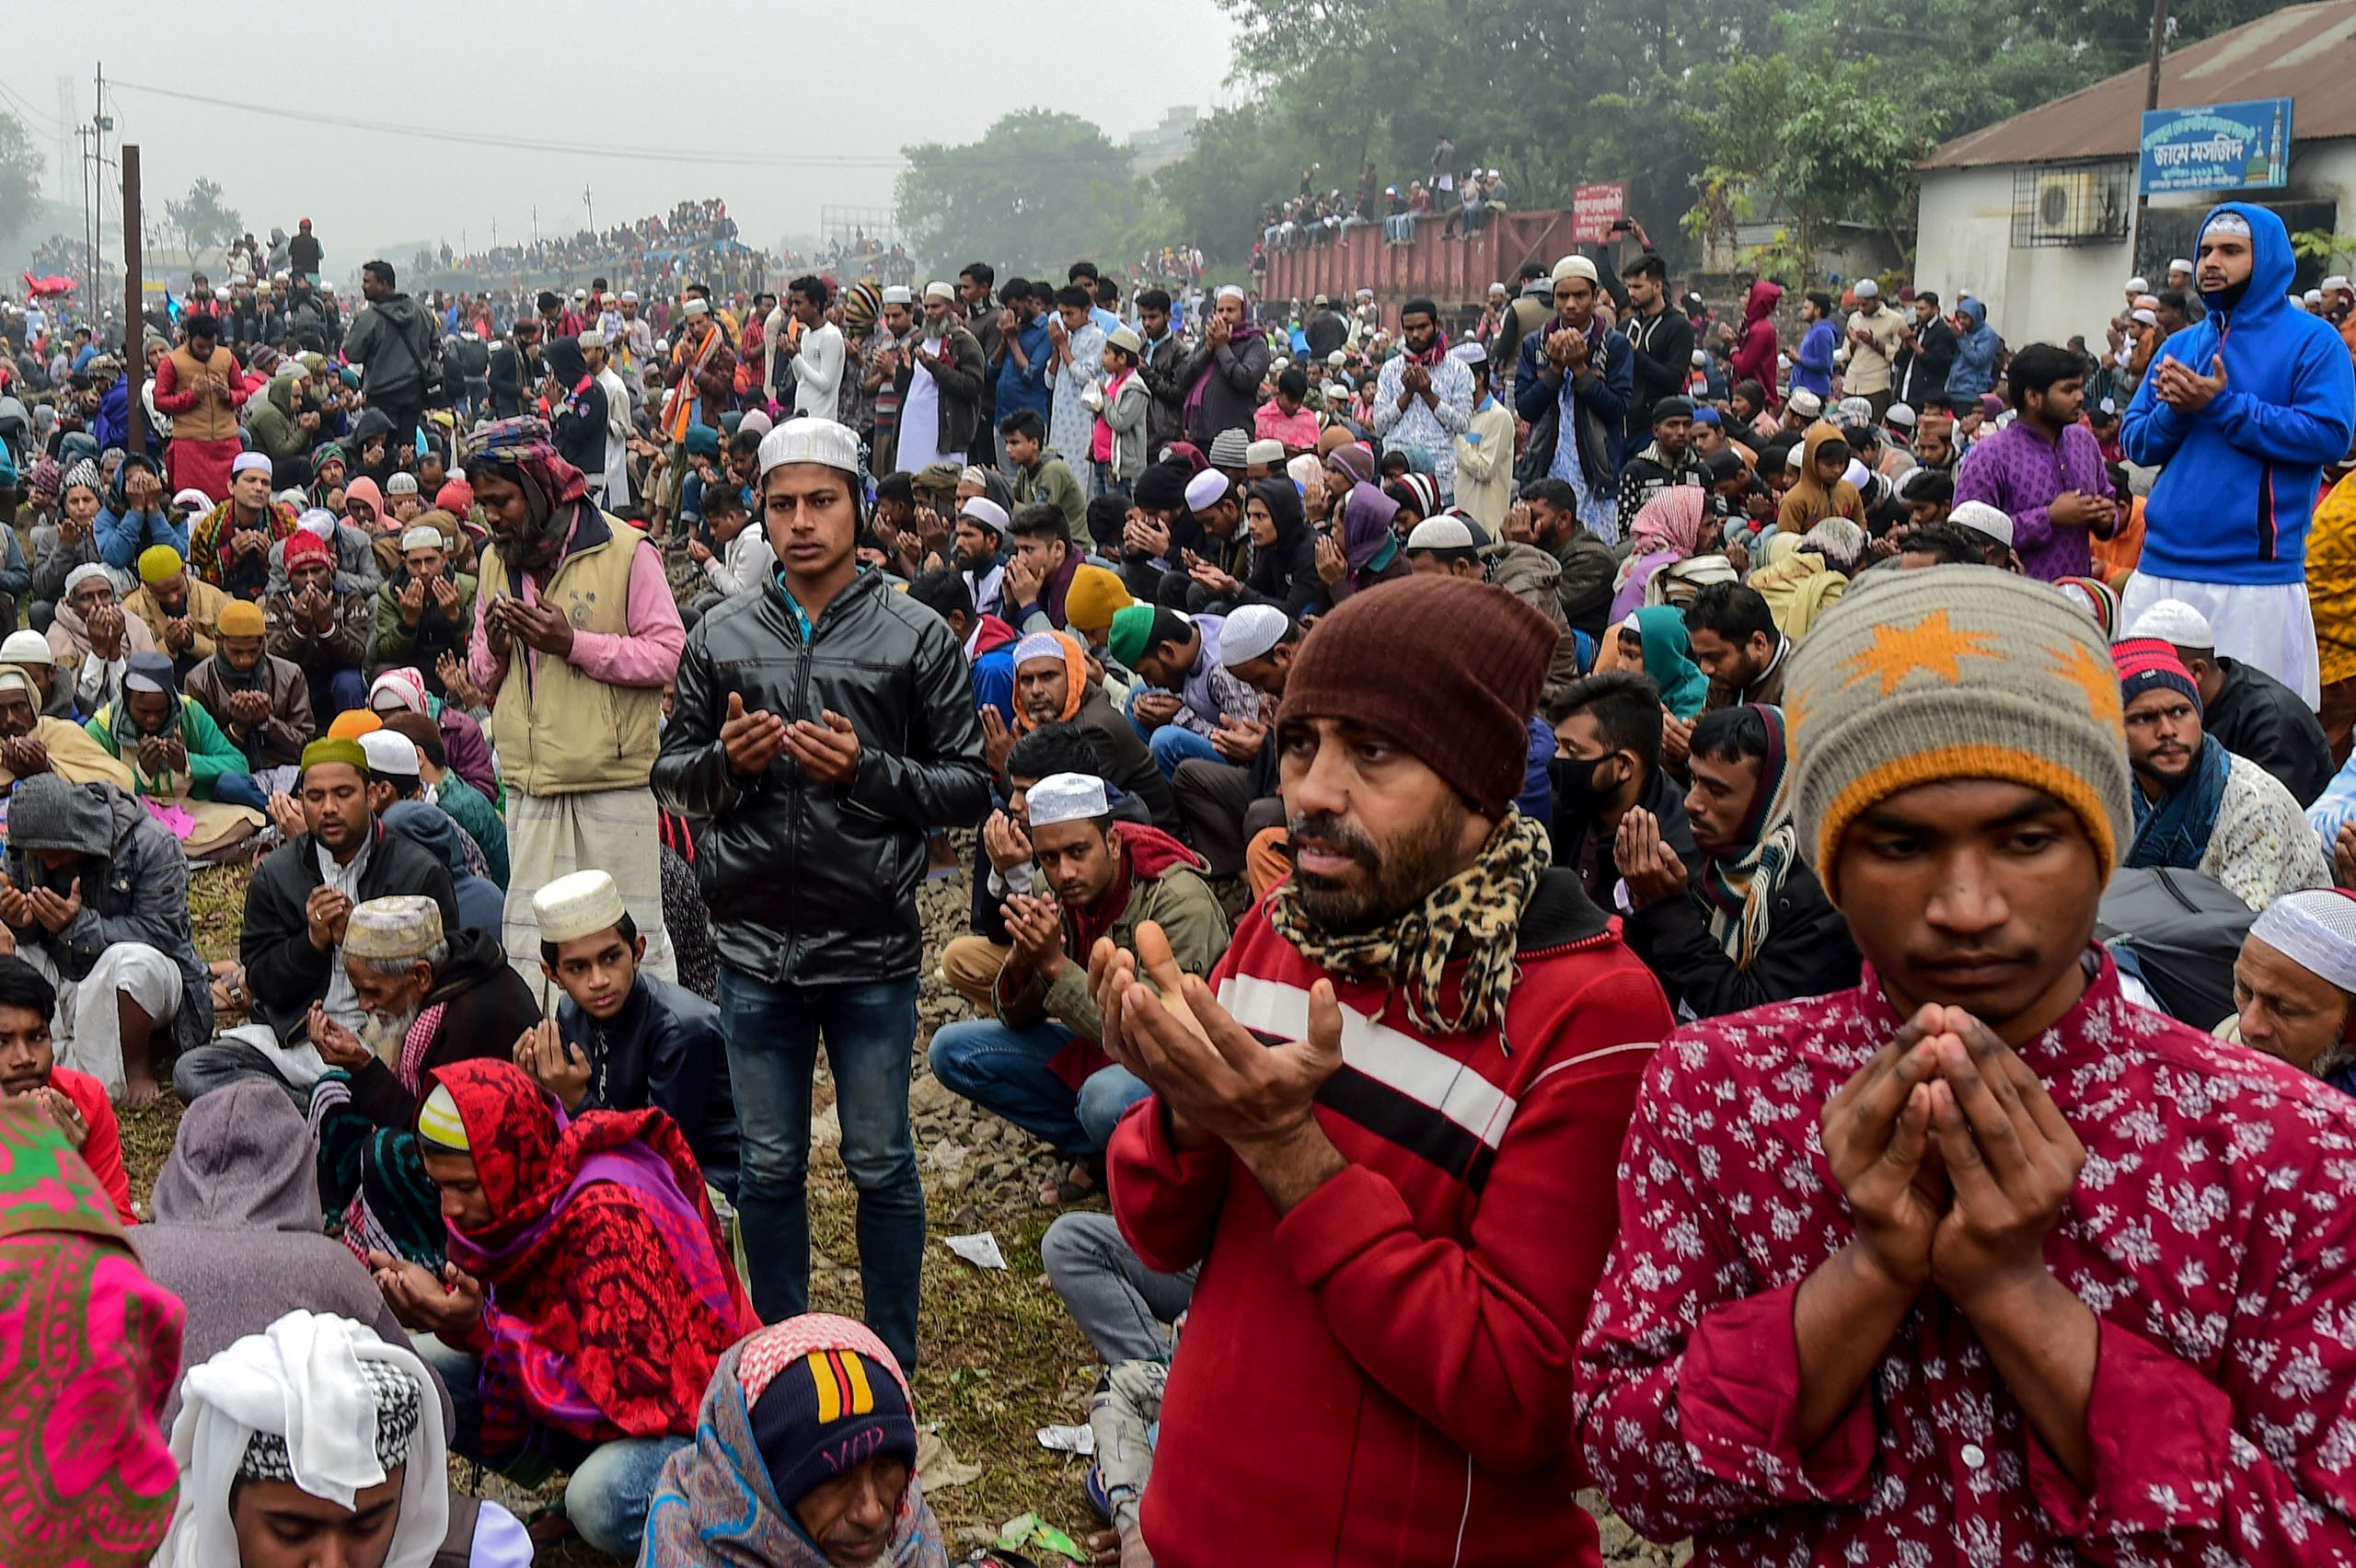 Muslim devotees take part in the Akheri Munajat, or final prayers, during the annual Muslim gathering 'Biswa Ijtema' in Tongi, some 30 kilometers north of Dhaka on January 12, 2020. (AFP)